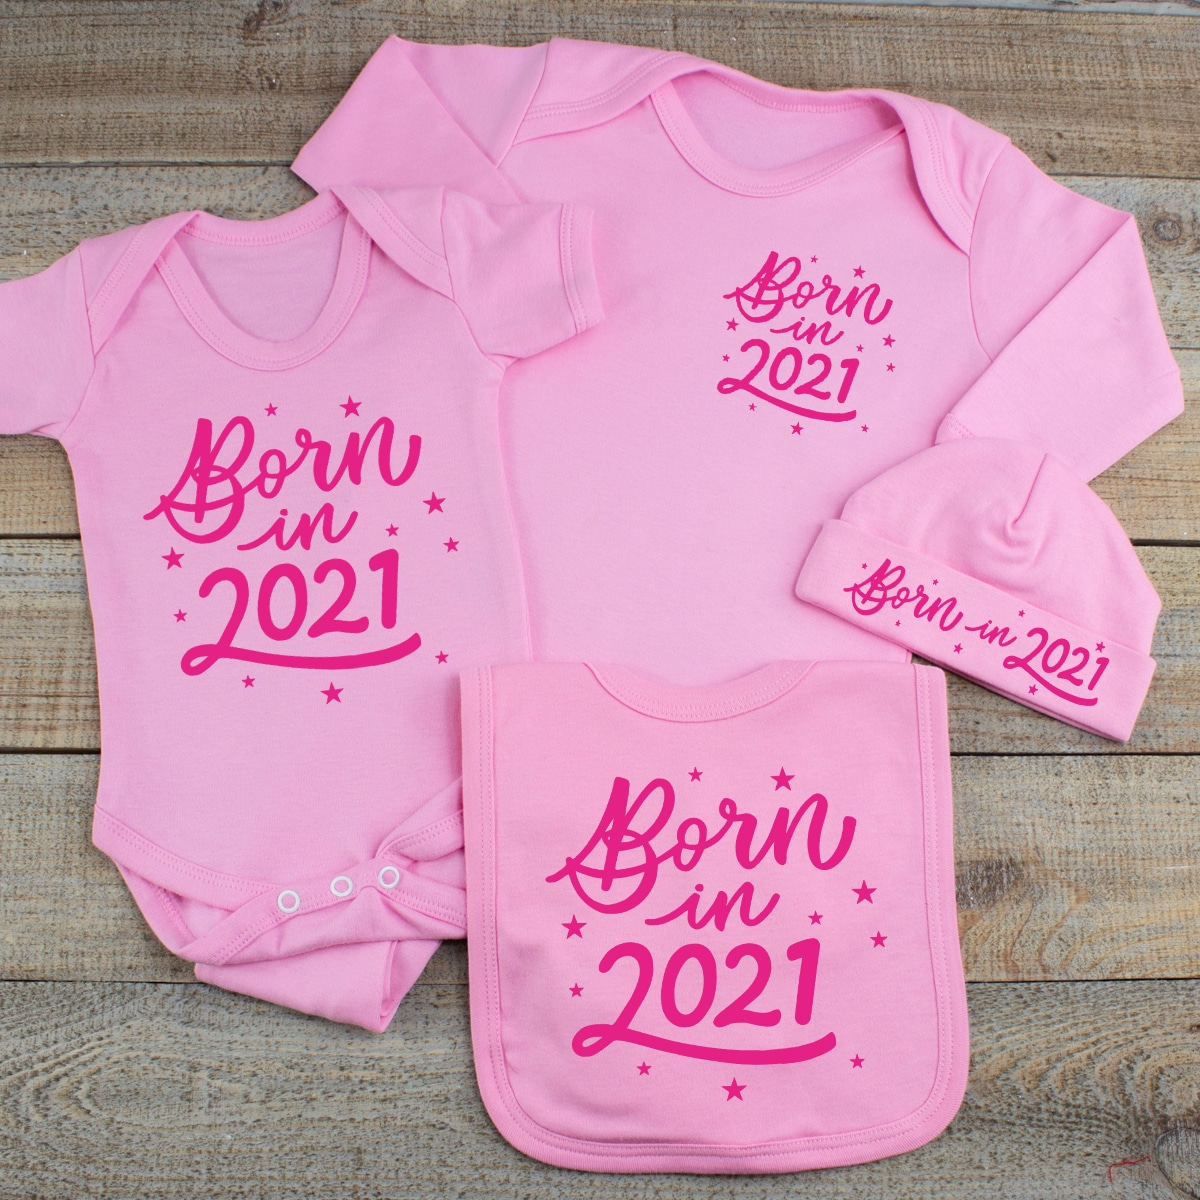 Baby Girl Born in 2021 Clothes Gift Set